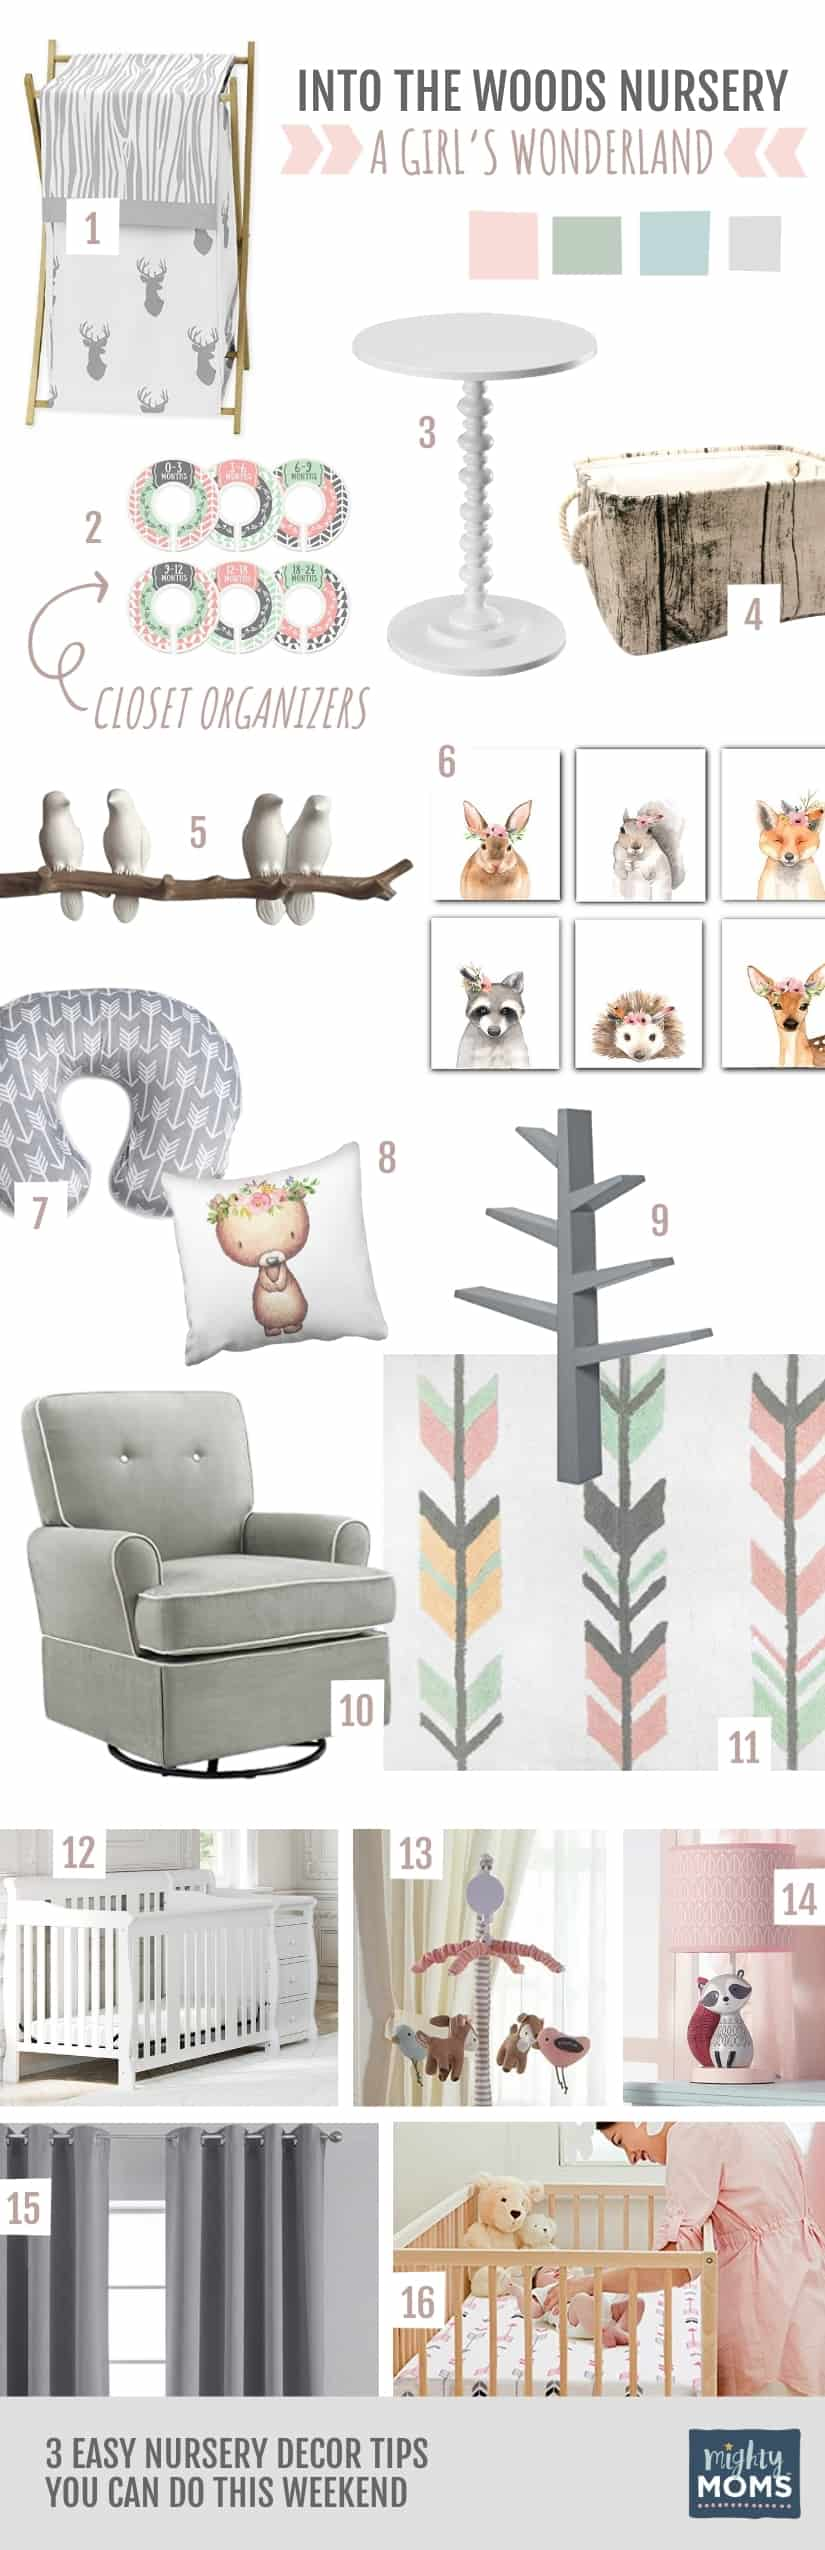 3 Easy Nursery Decor Tips You Can Do This Weekend